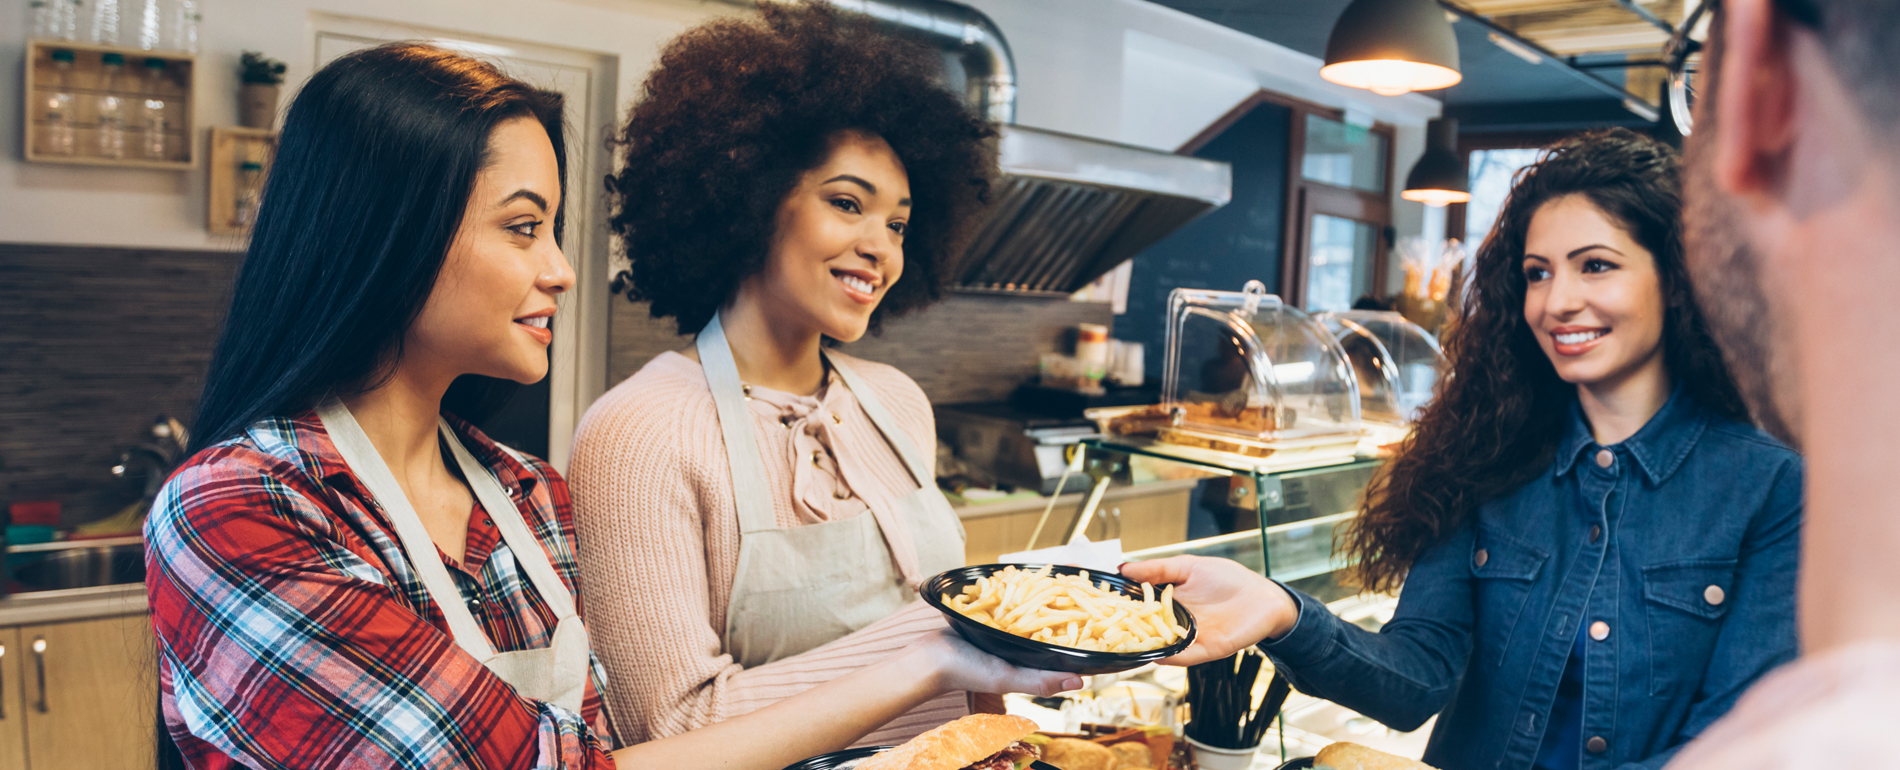 4 Ways Restaurants Can Add 'Flexibility, Versatility' To Customer Experience